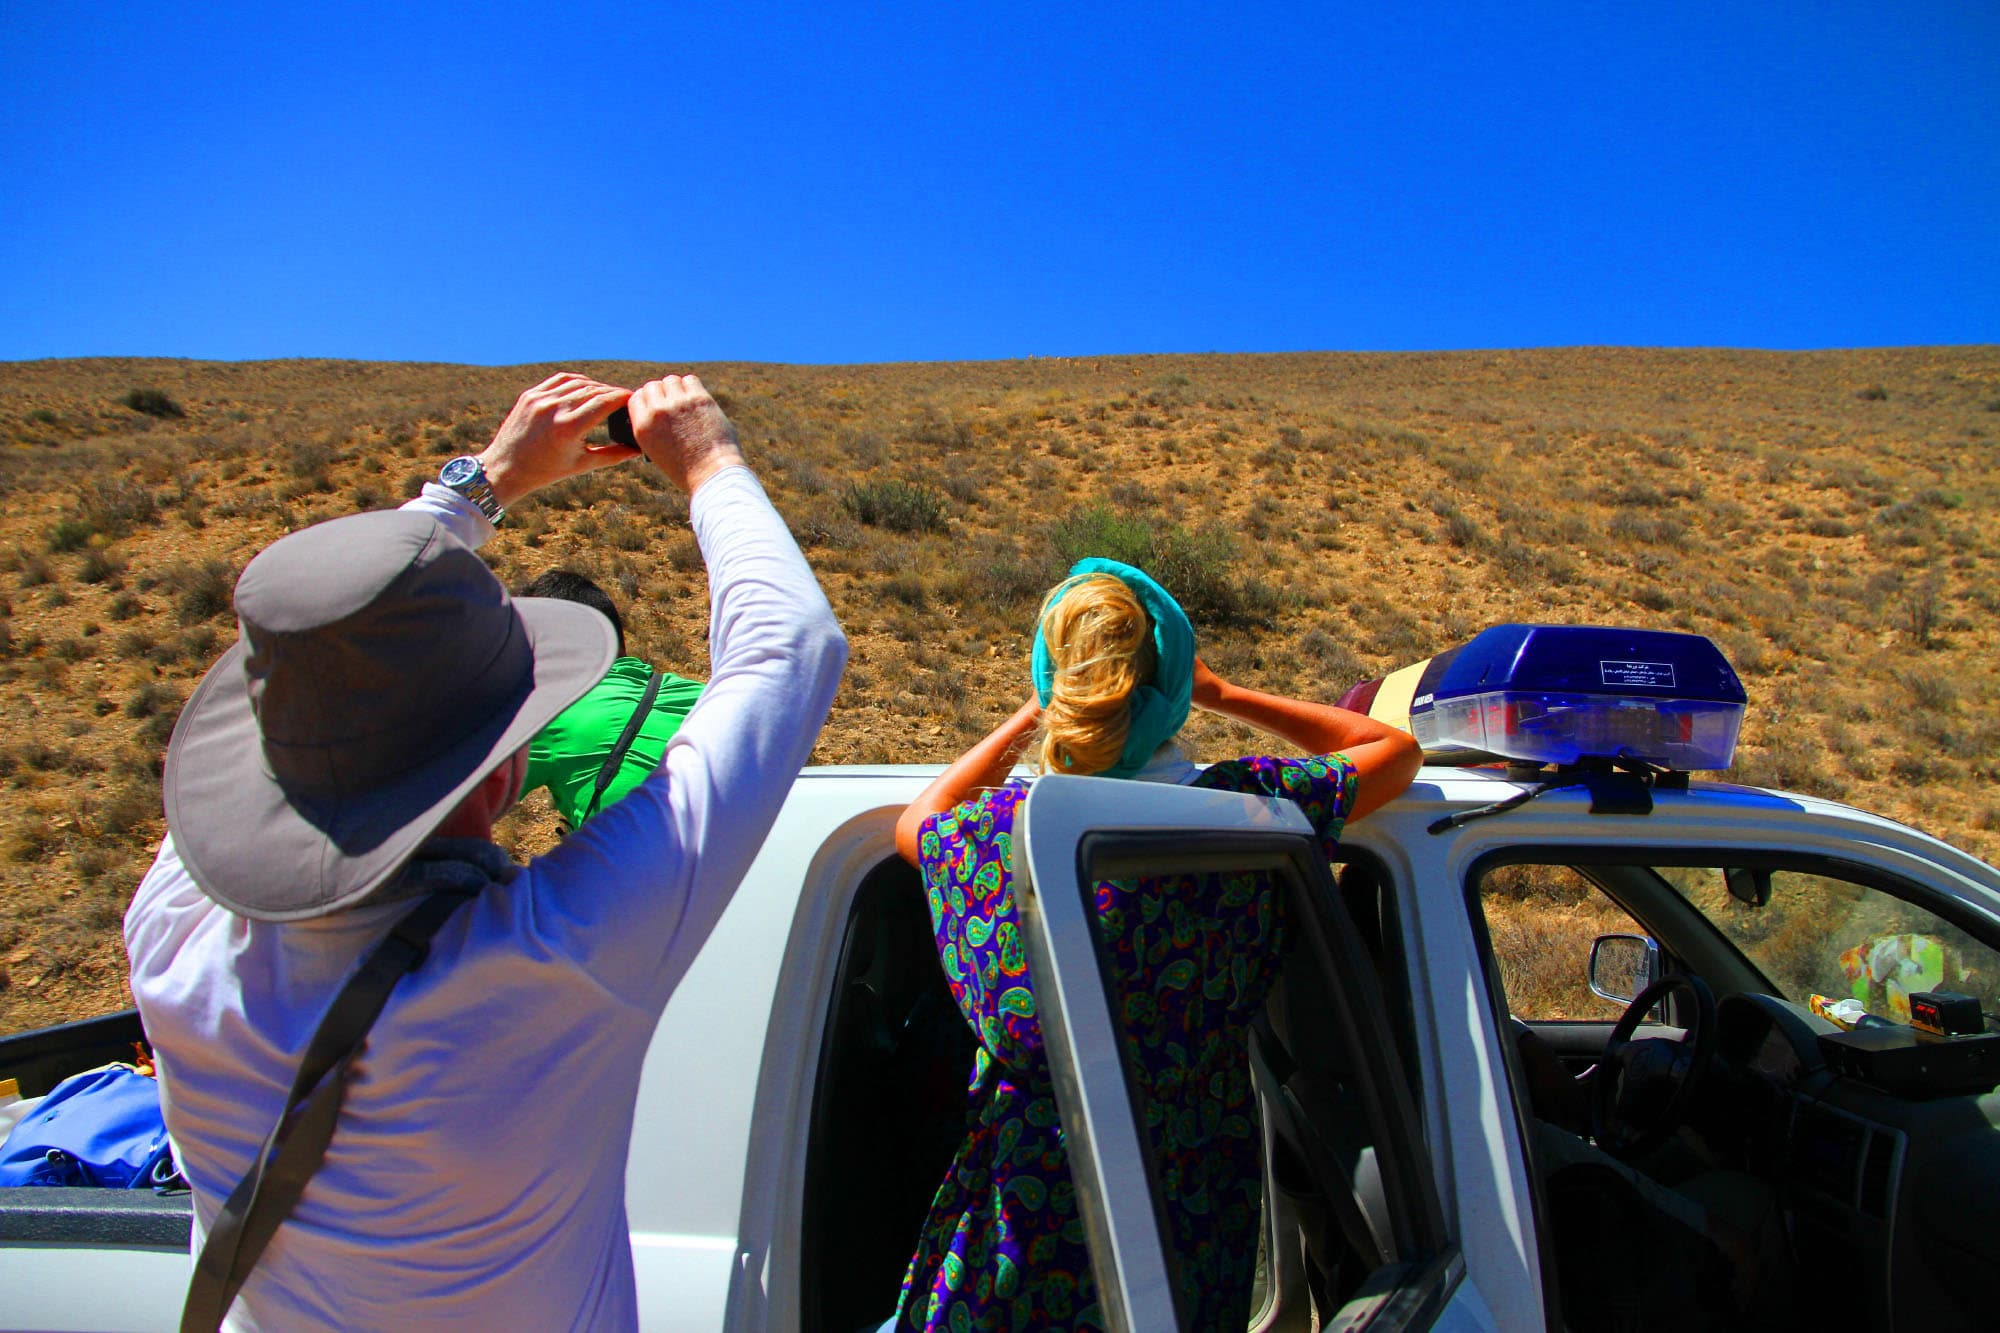 Travel to Iran - An Adventure With A Swiss Family, Iran's Golestan Park